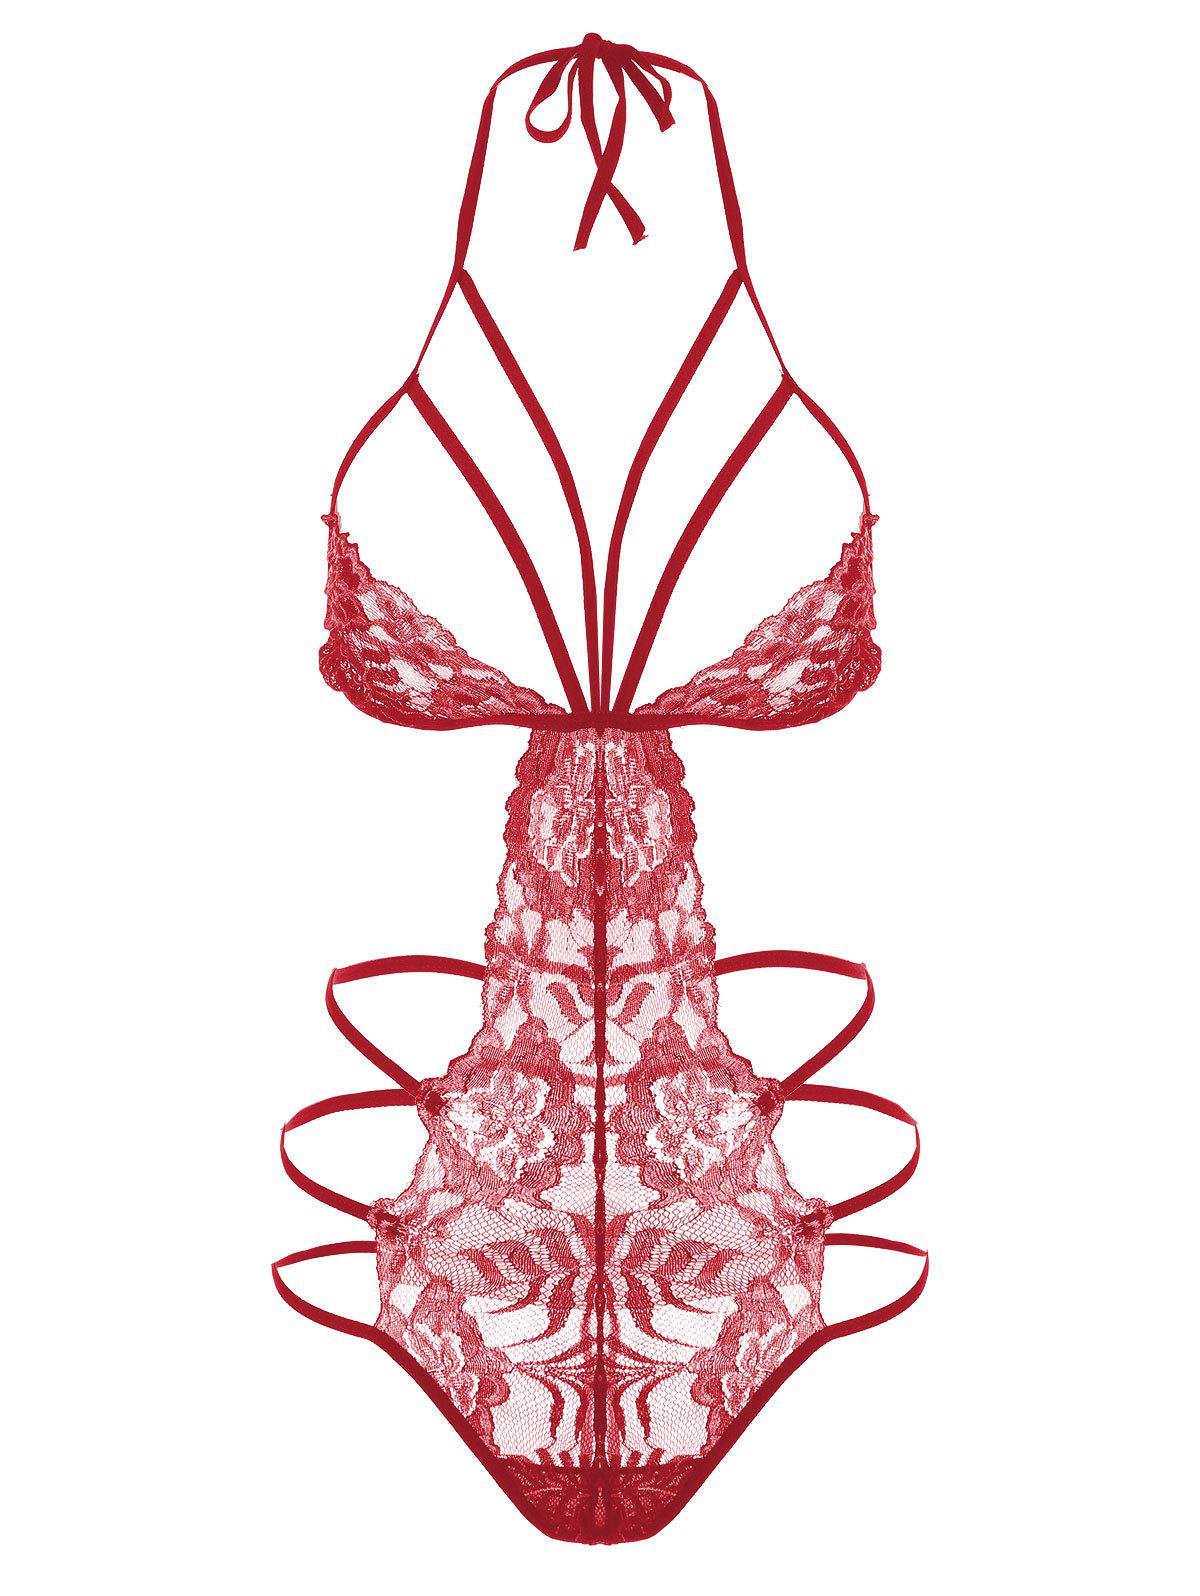 Lace Strappy Caged Lingerie Teddy - RED S